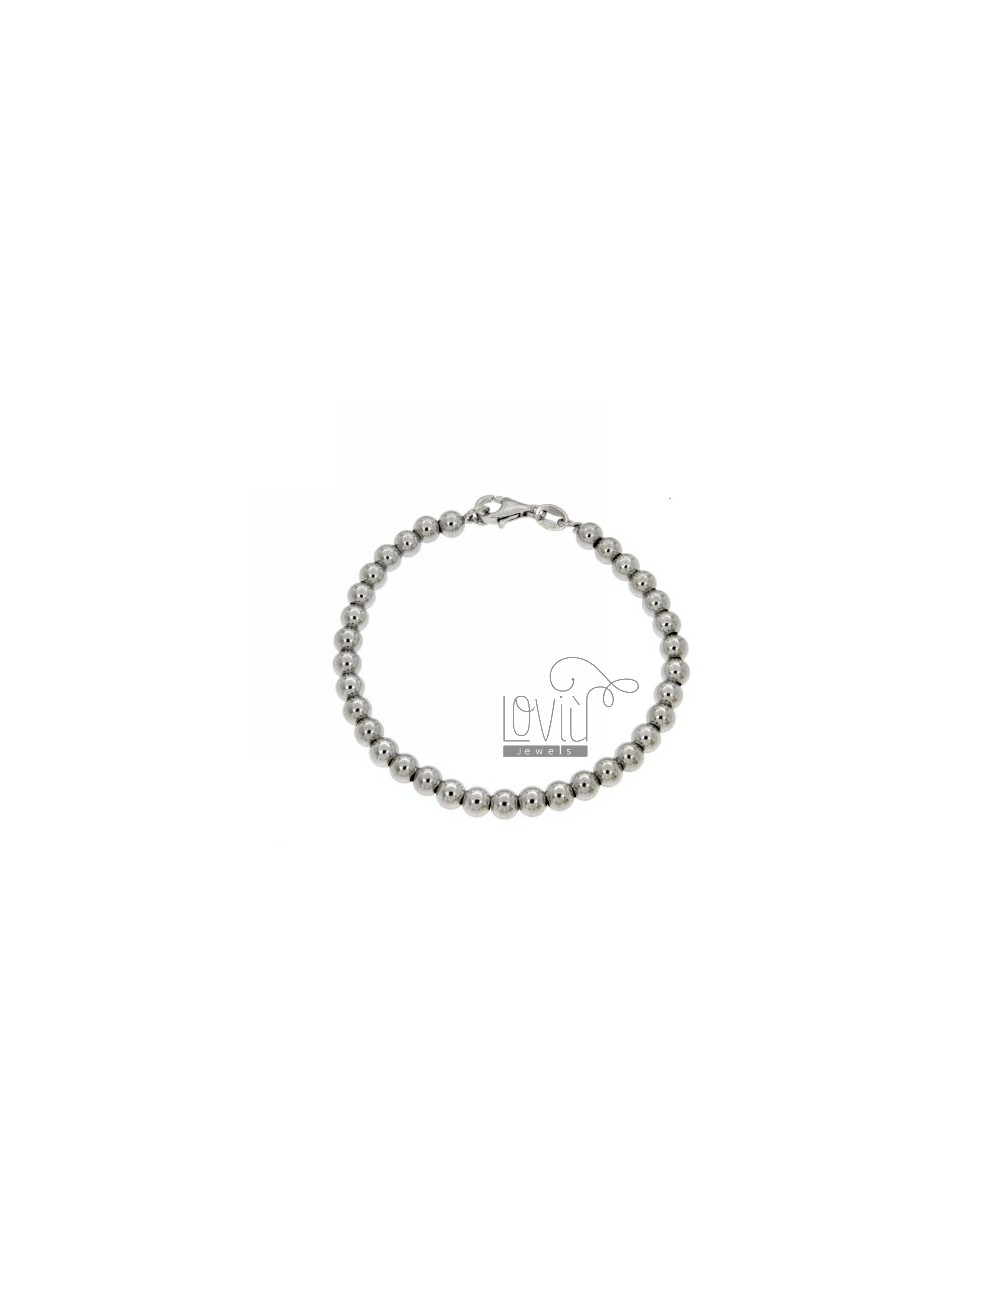 BRACELET SPHERES OF 5 MM SILVER RHODIUM 925 ‰ WITH CLOSURE